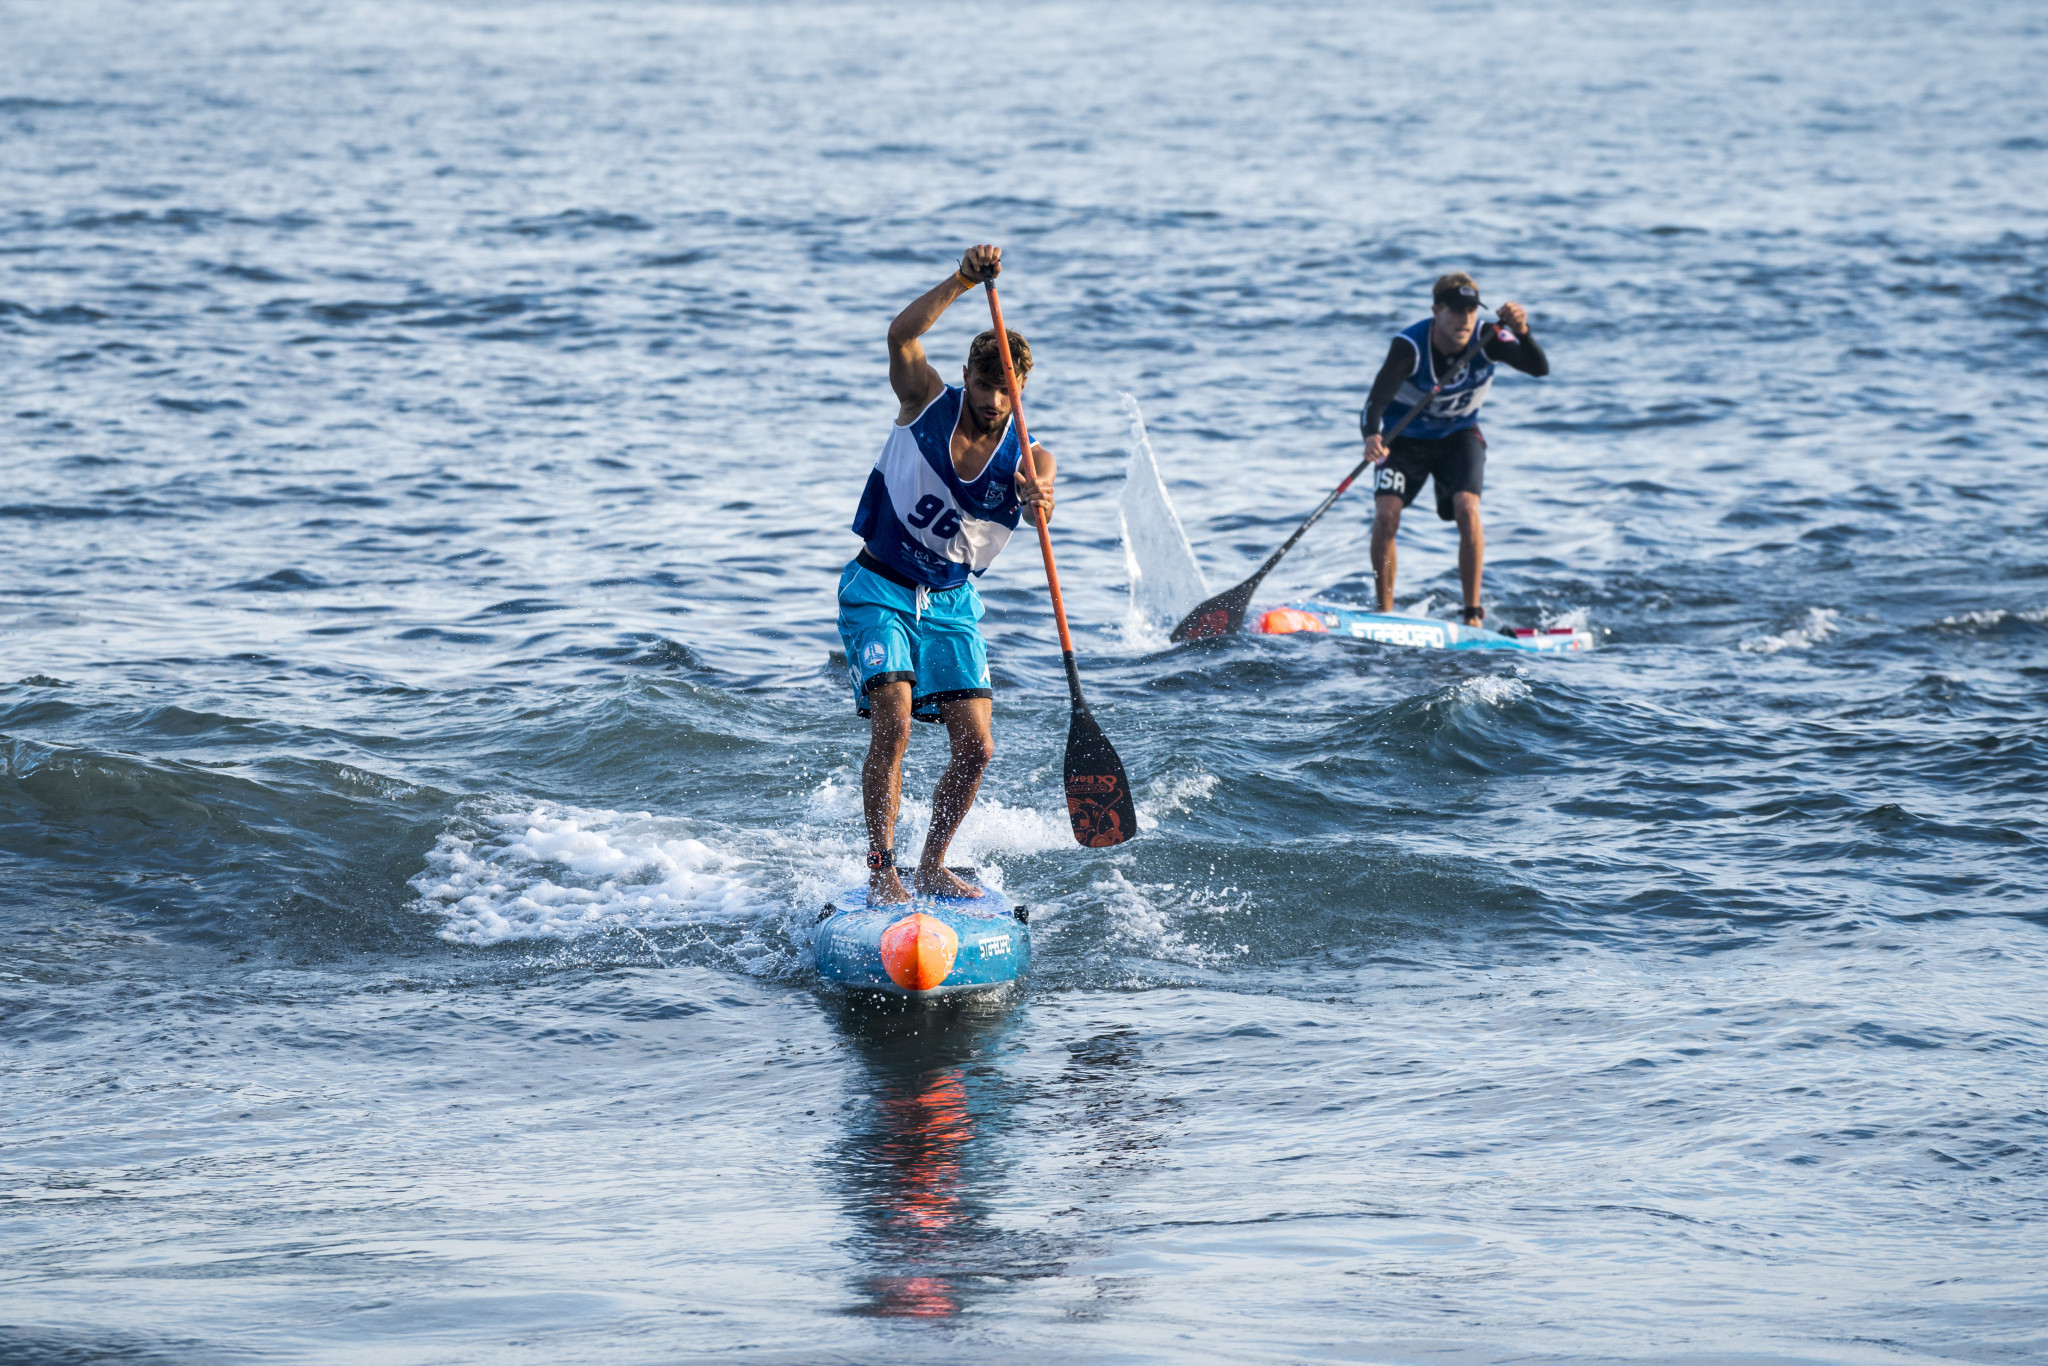 Howson and Nika claim sprint golds as ISA World StandUp Paddle and Paddleboard Championship